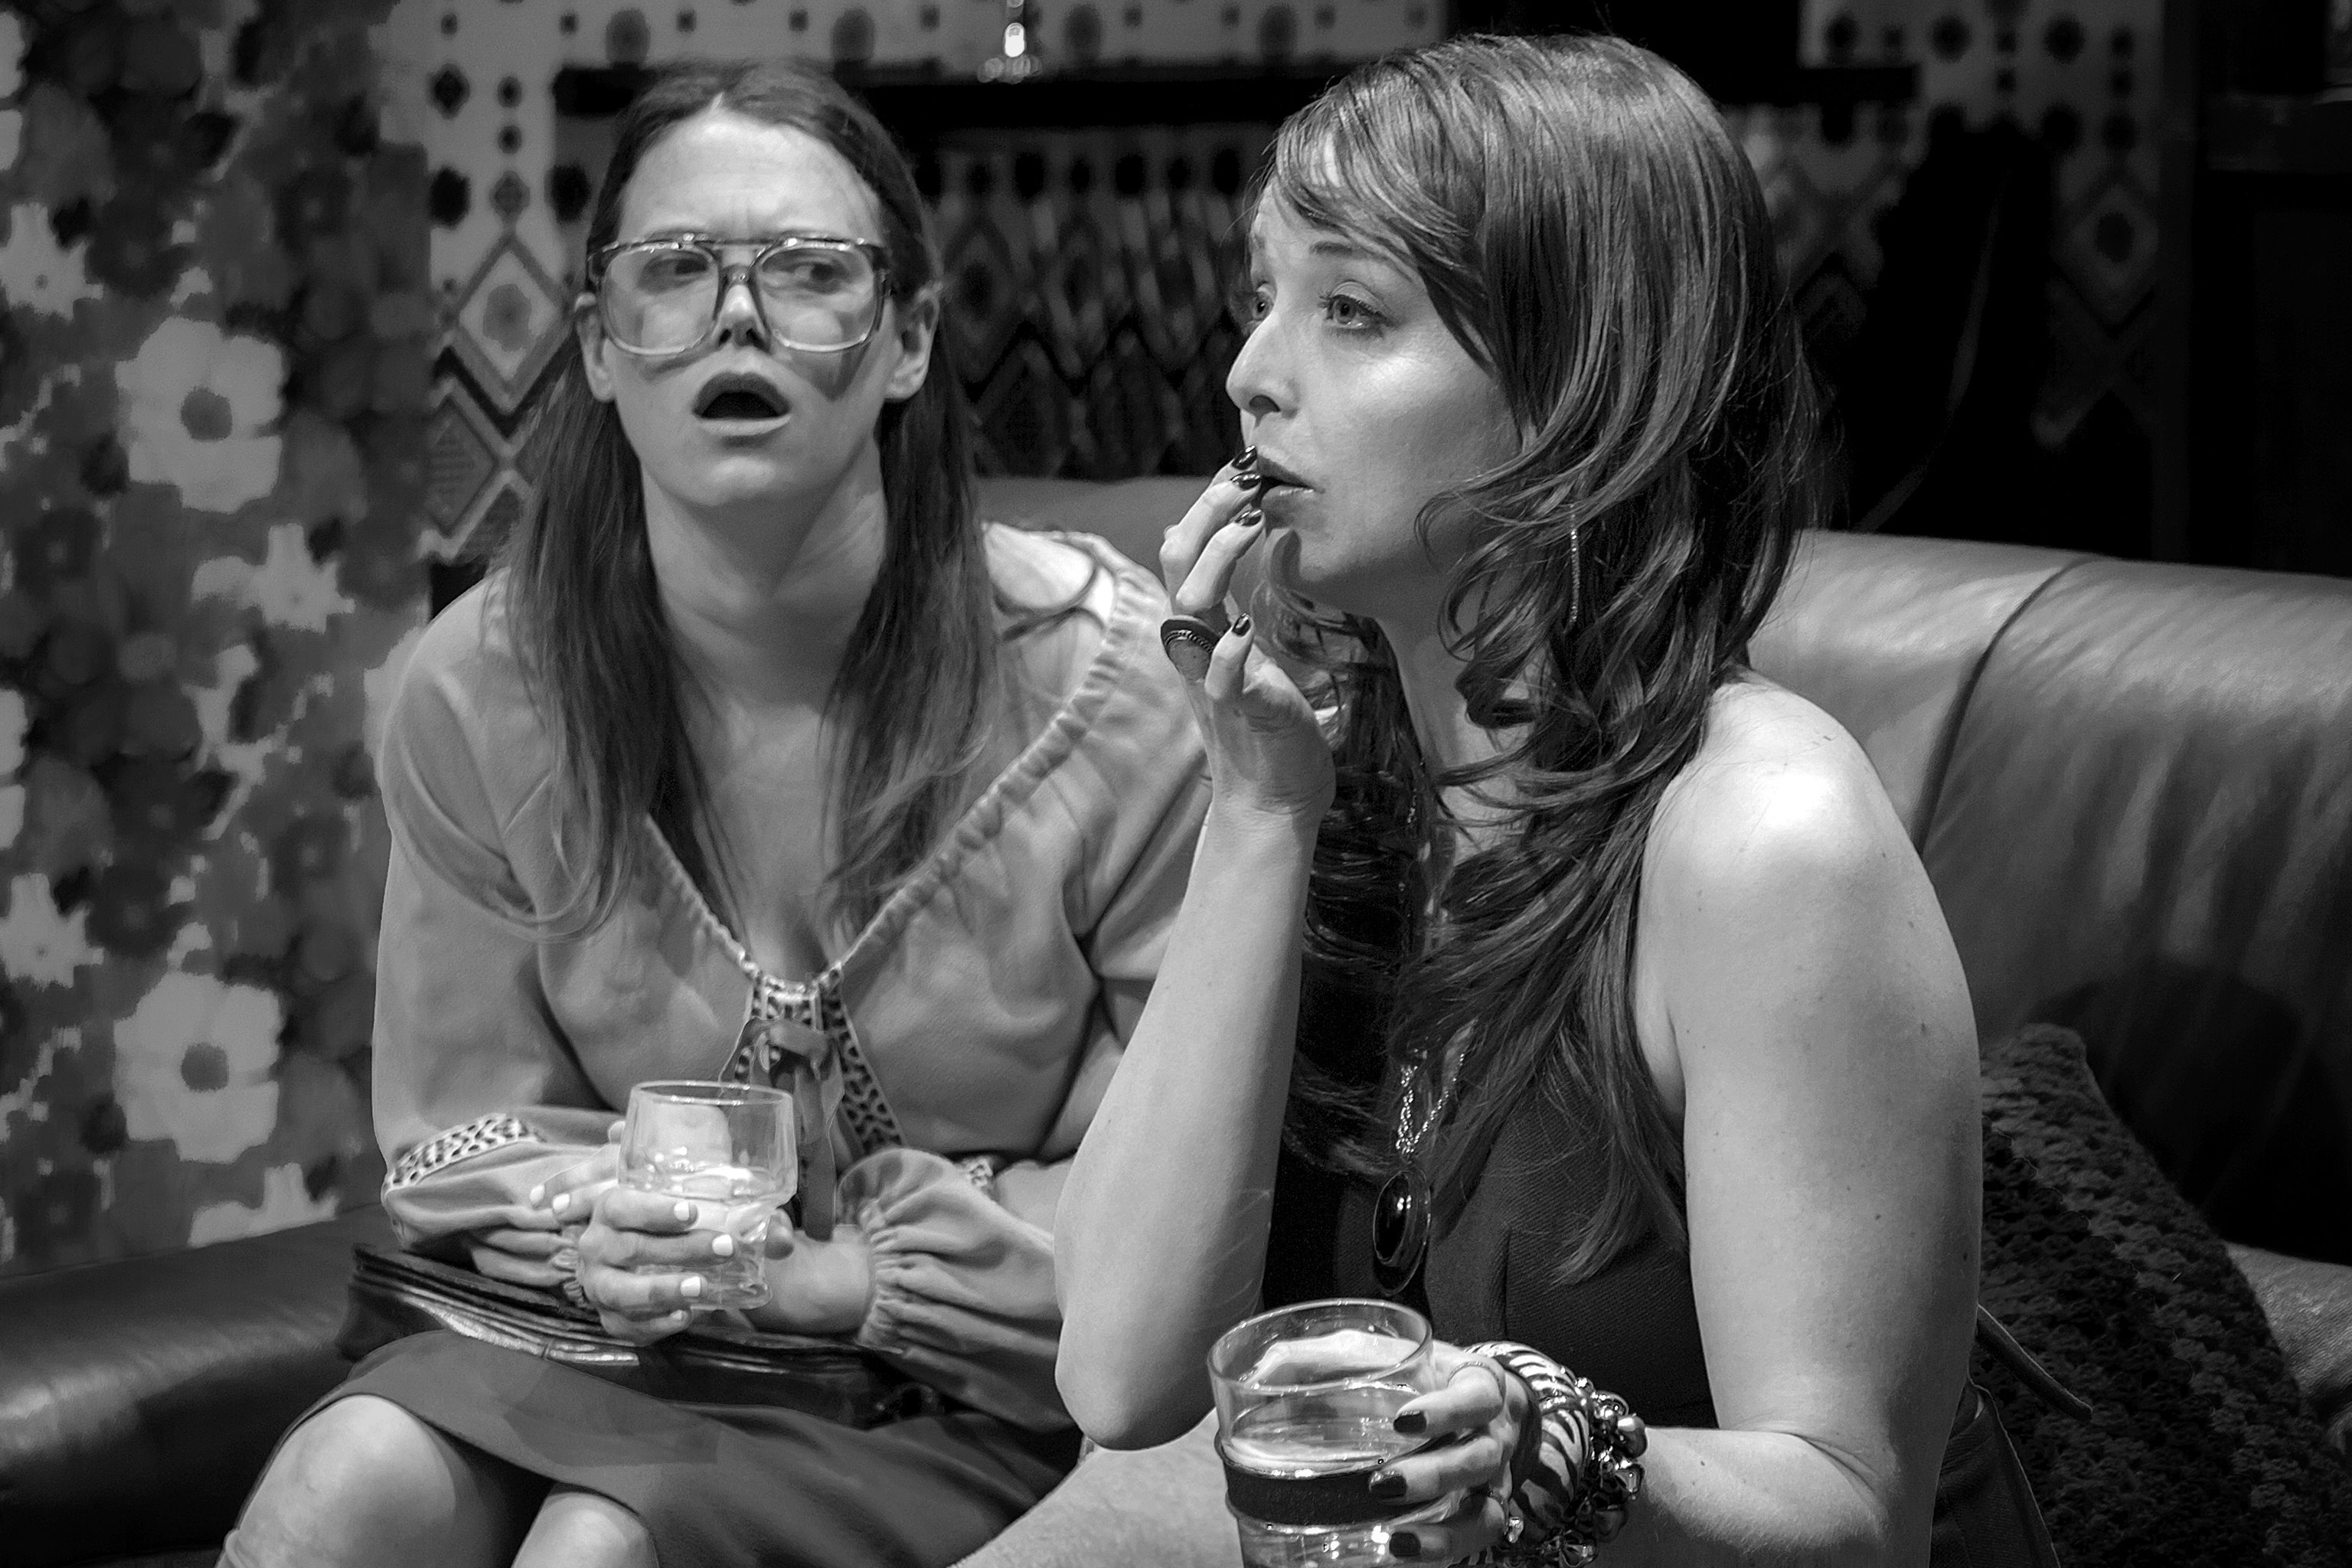 Claire Burns (left) and Anna Hardwick (right) in Abagail's Party. Photo by Daniel Notarianni.